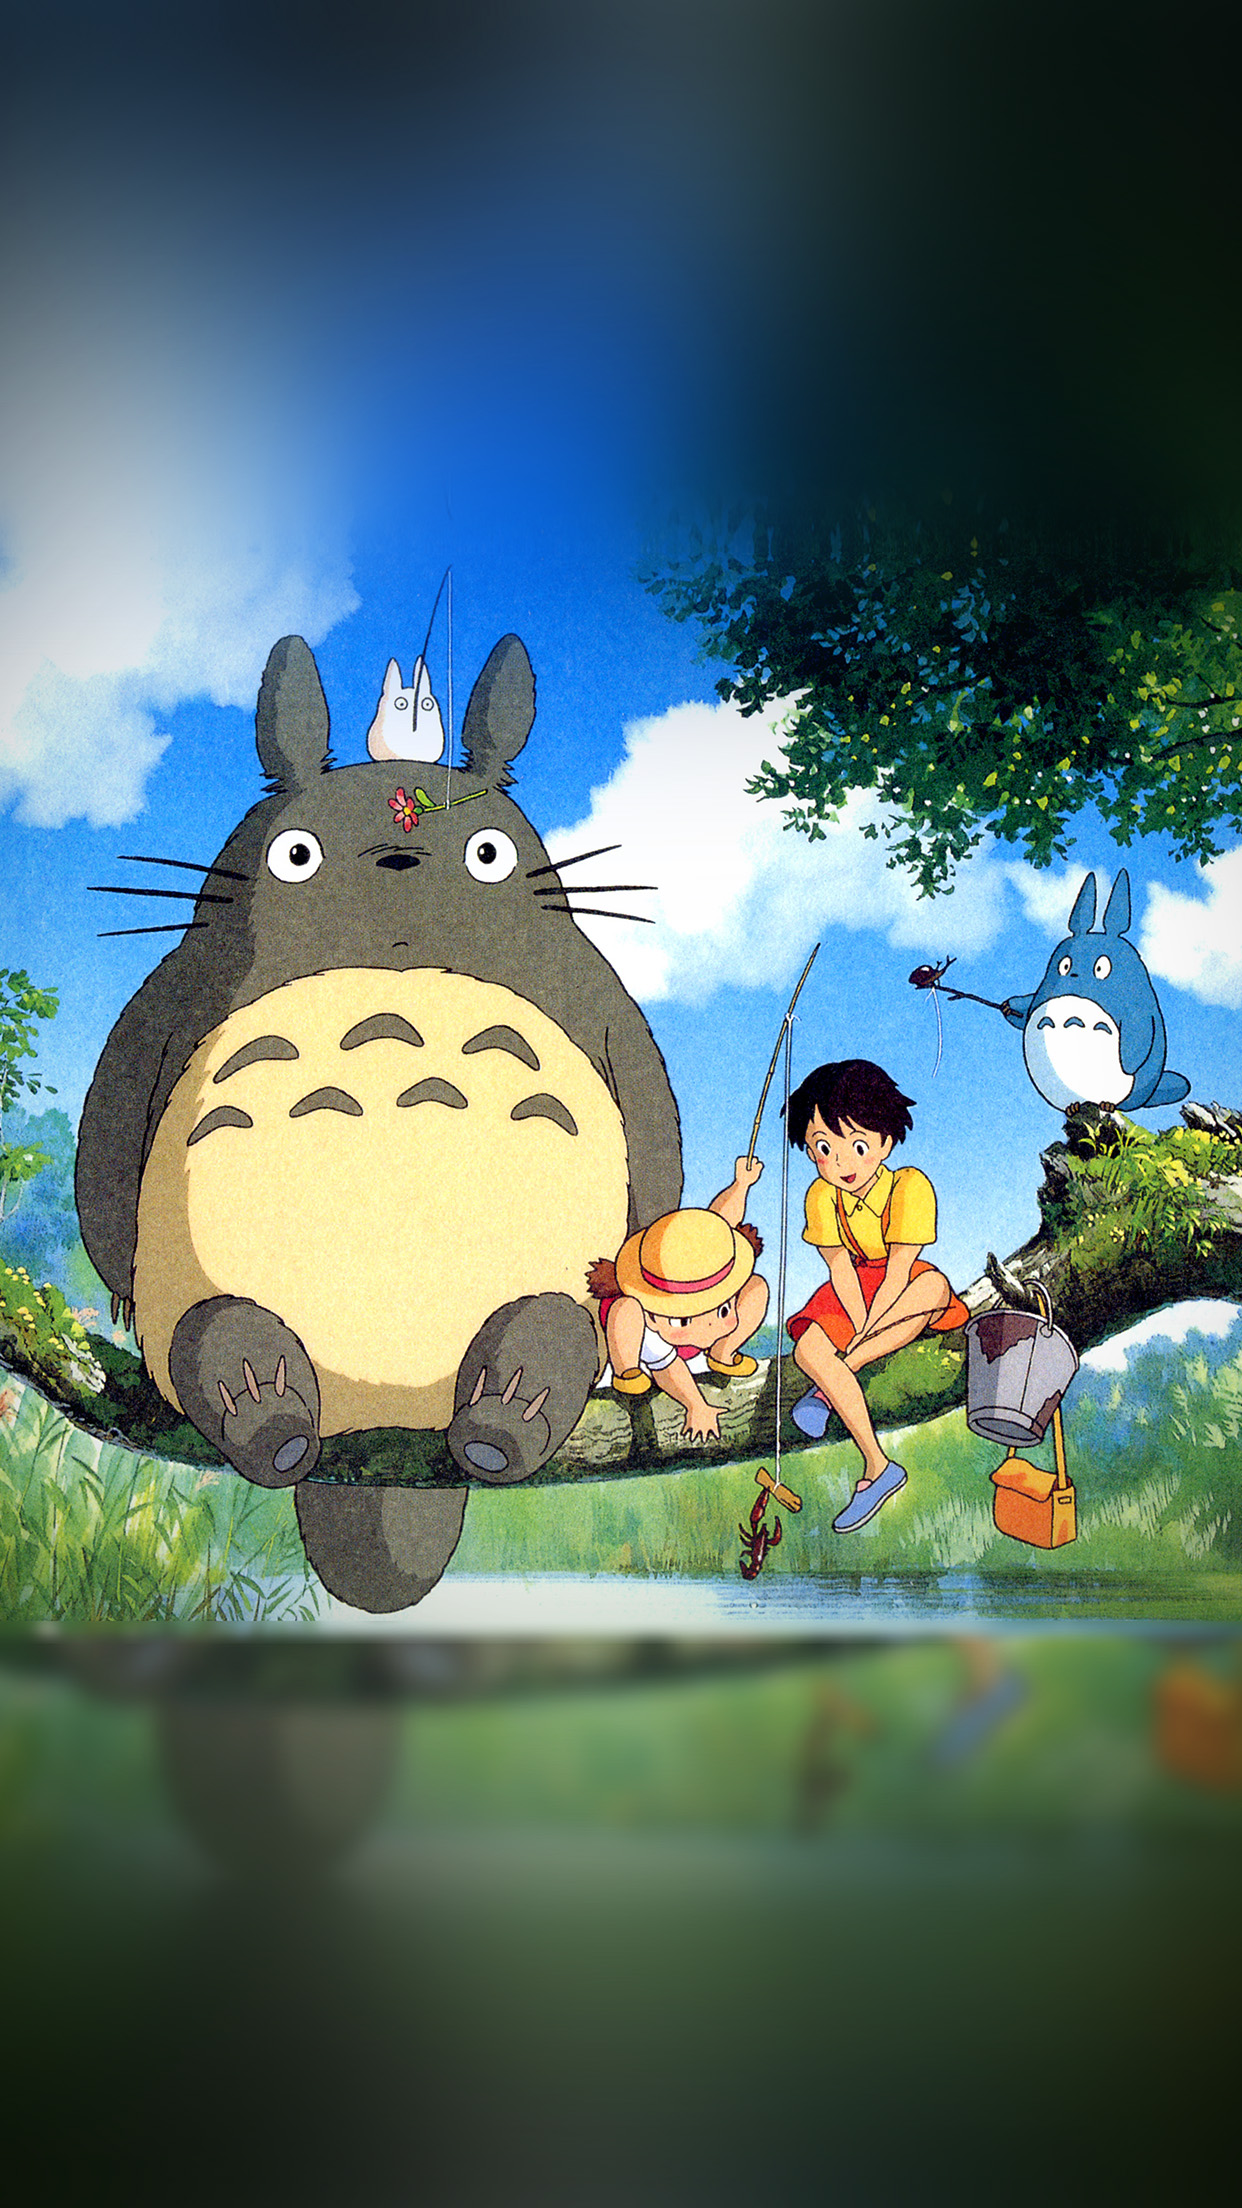 Iphone wallpaper as73 my neighbor totoro - Classic art wallpaper iphone 5 ...